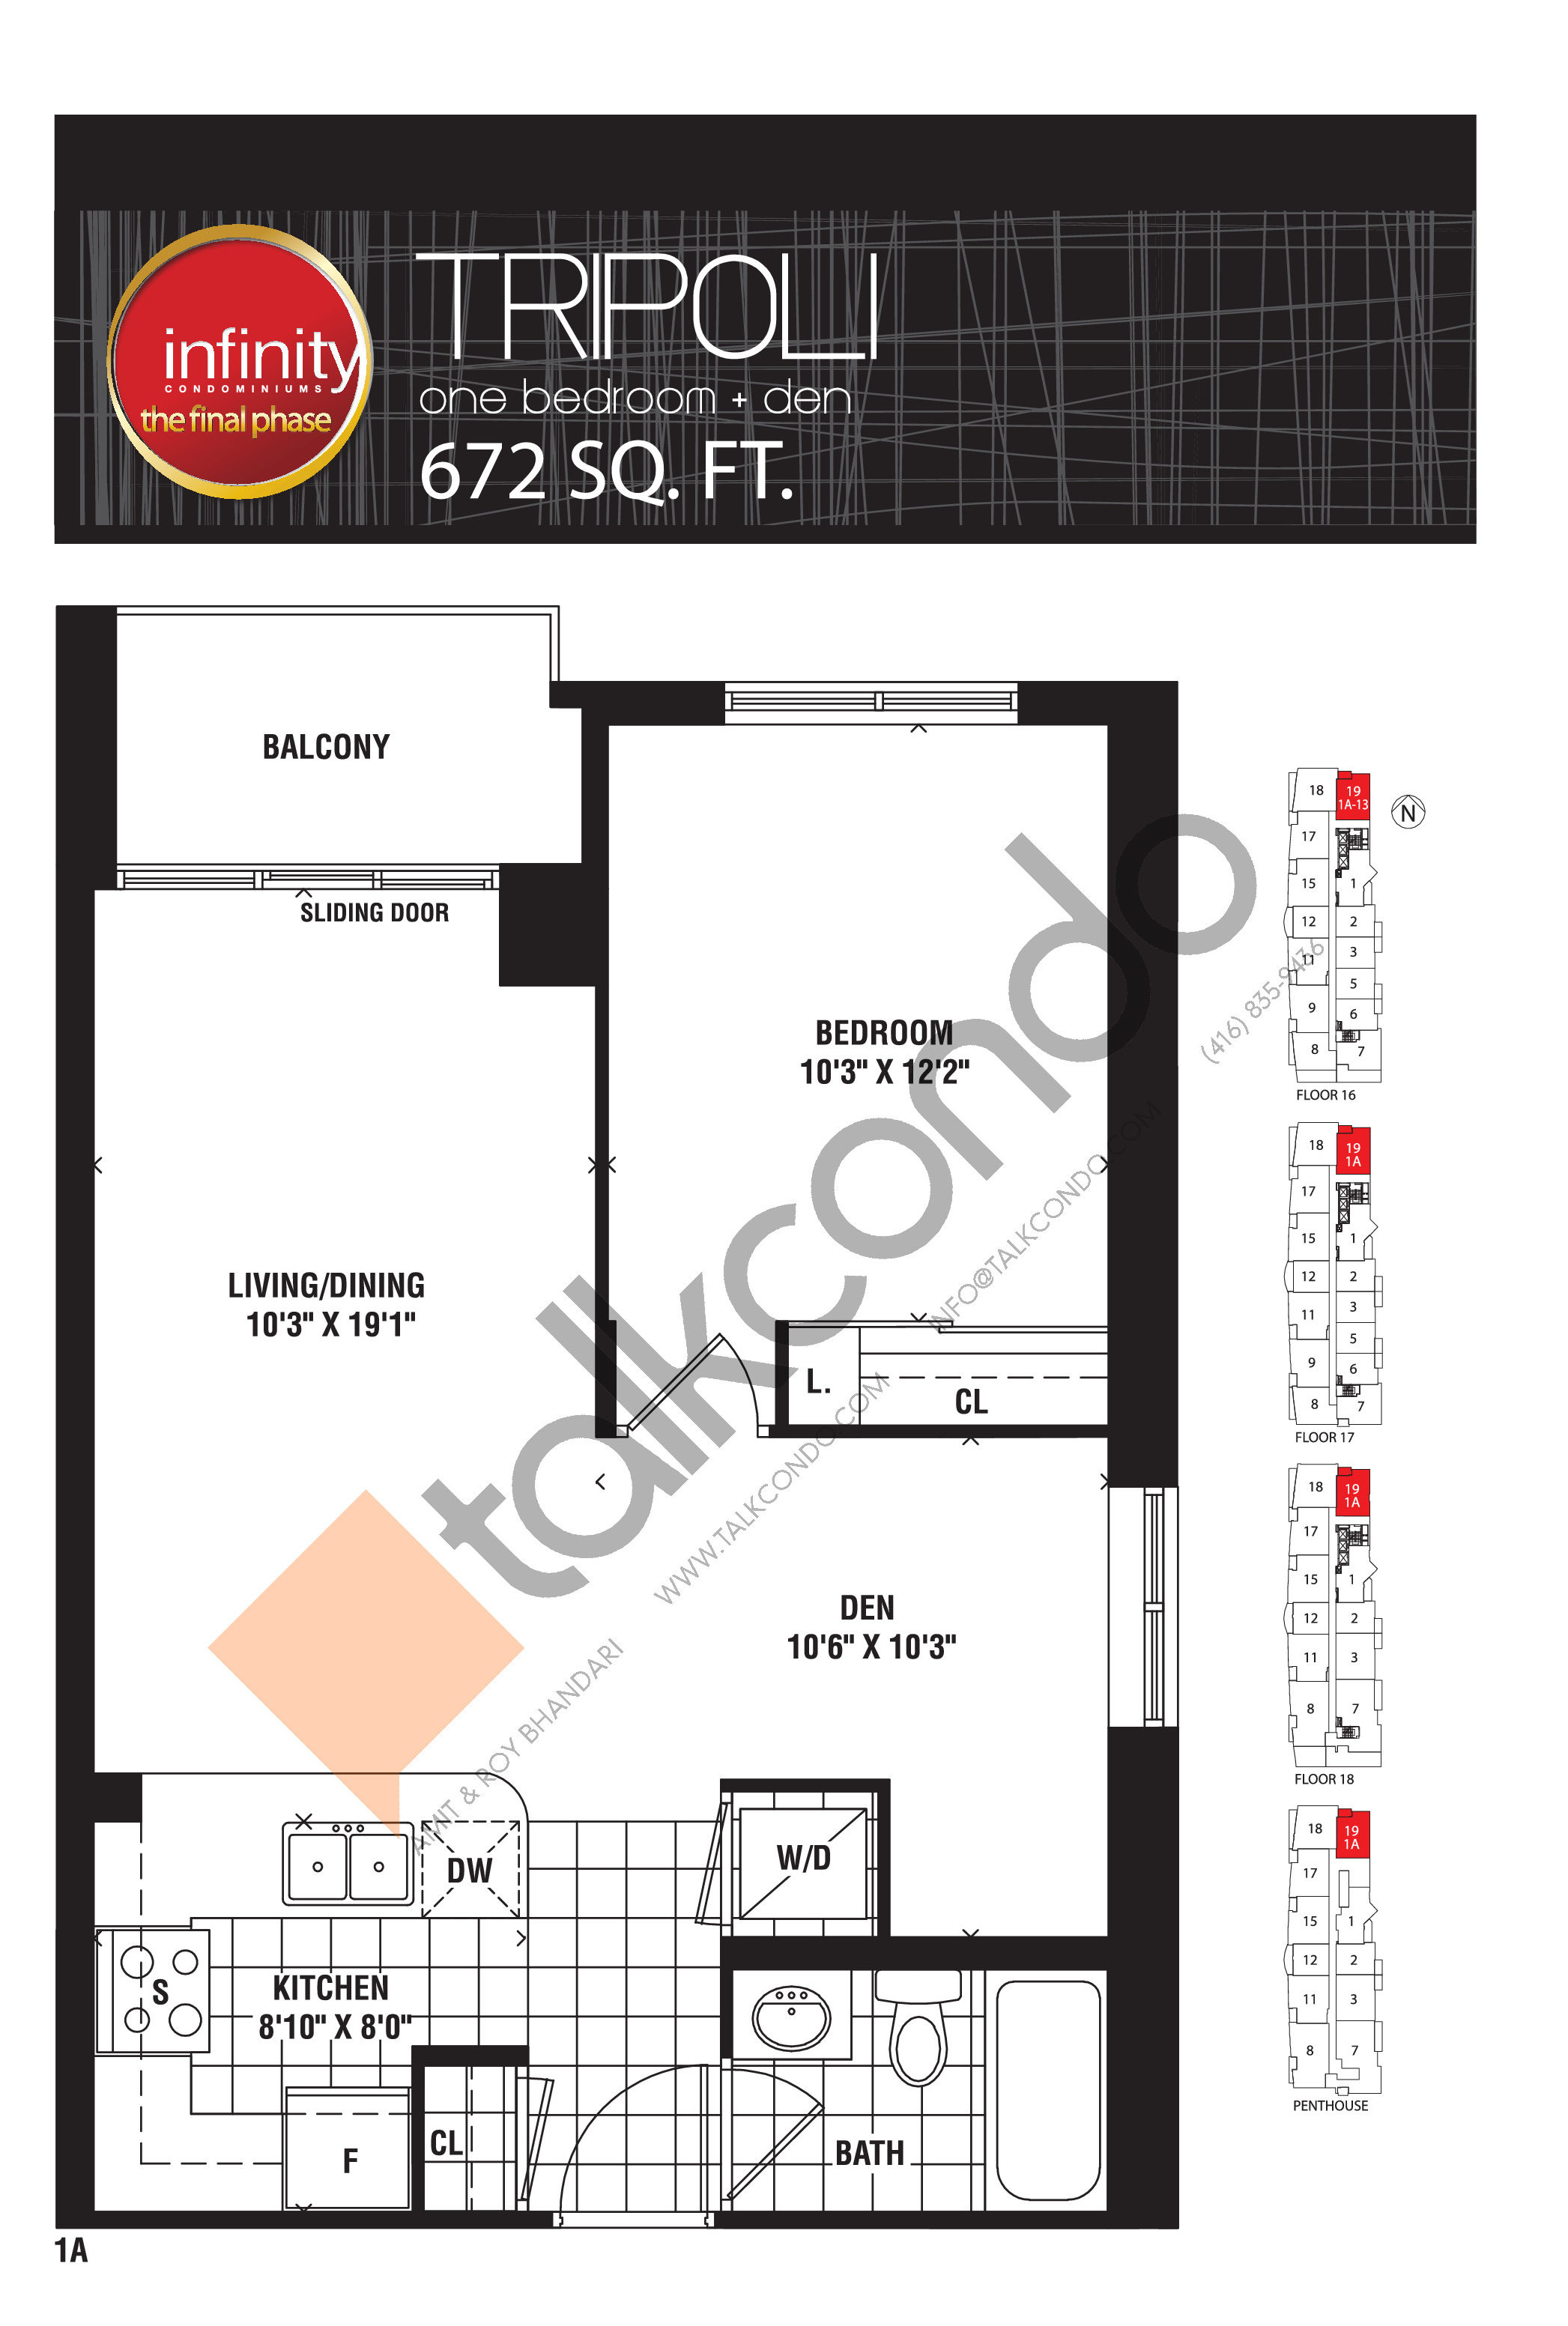 Tripoli Floor Plan at Infinity: The Final Phase Condos - 672 sq.ft